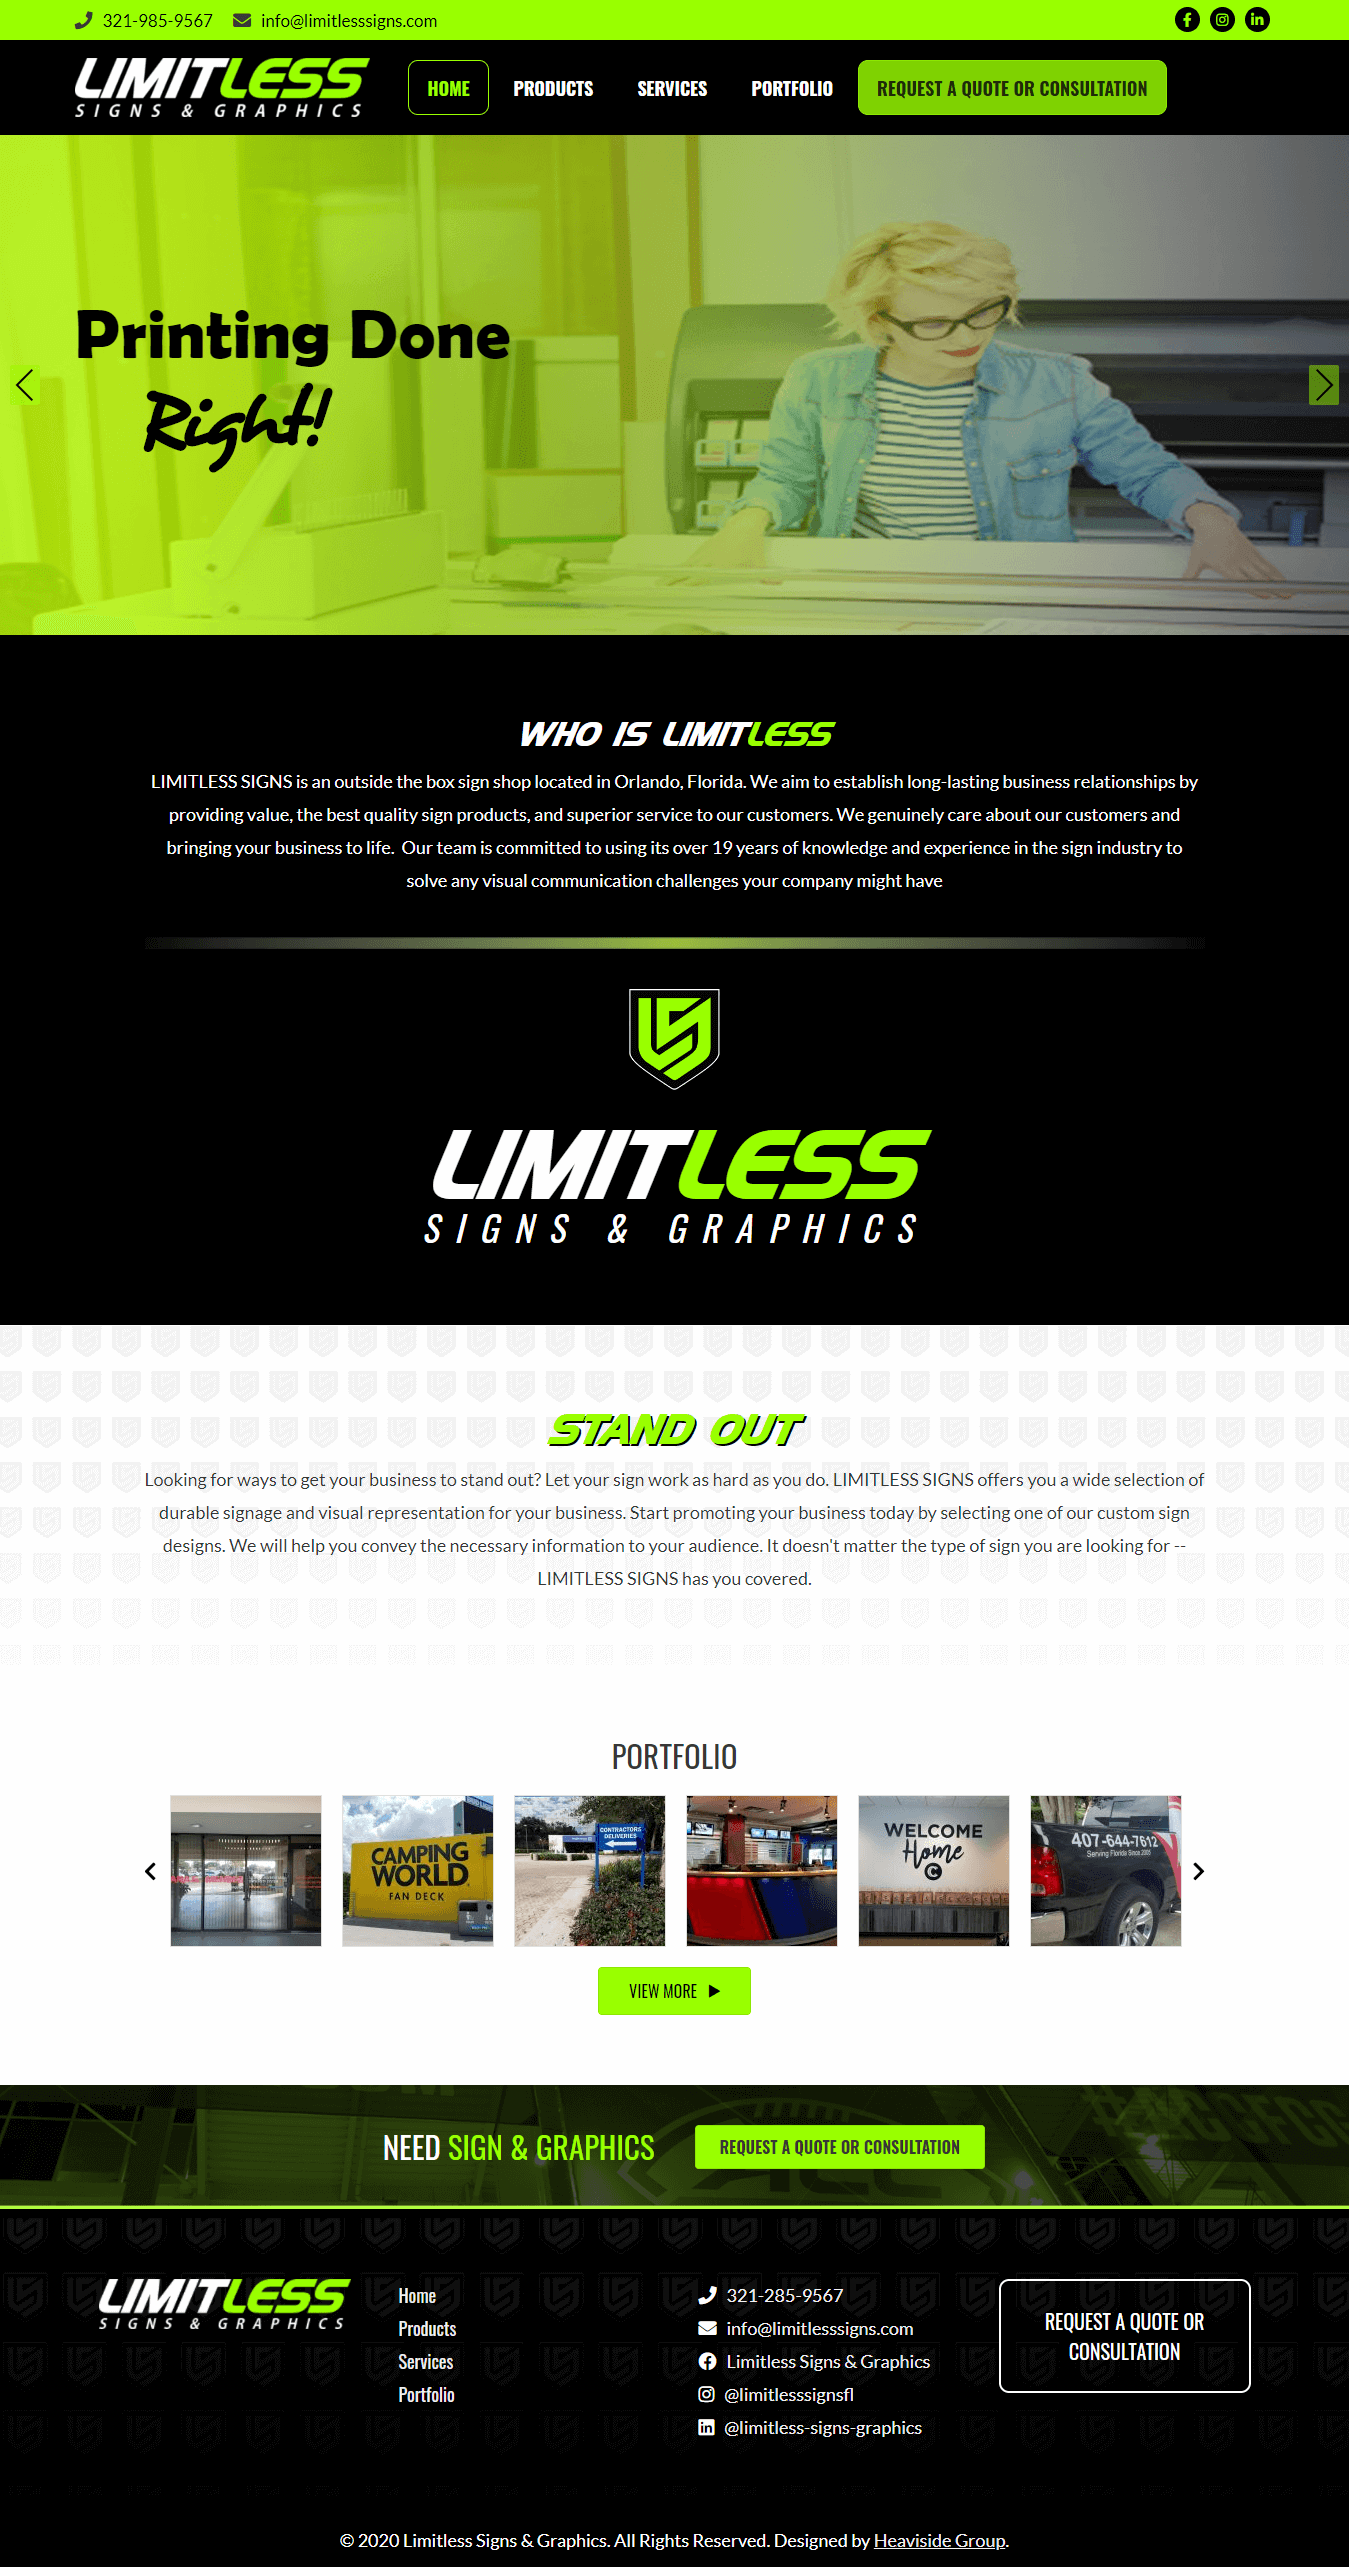 Limitless Signs & Graphics